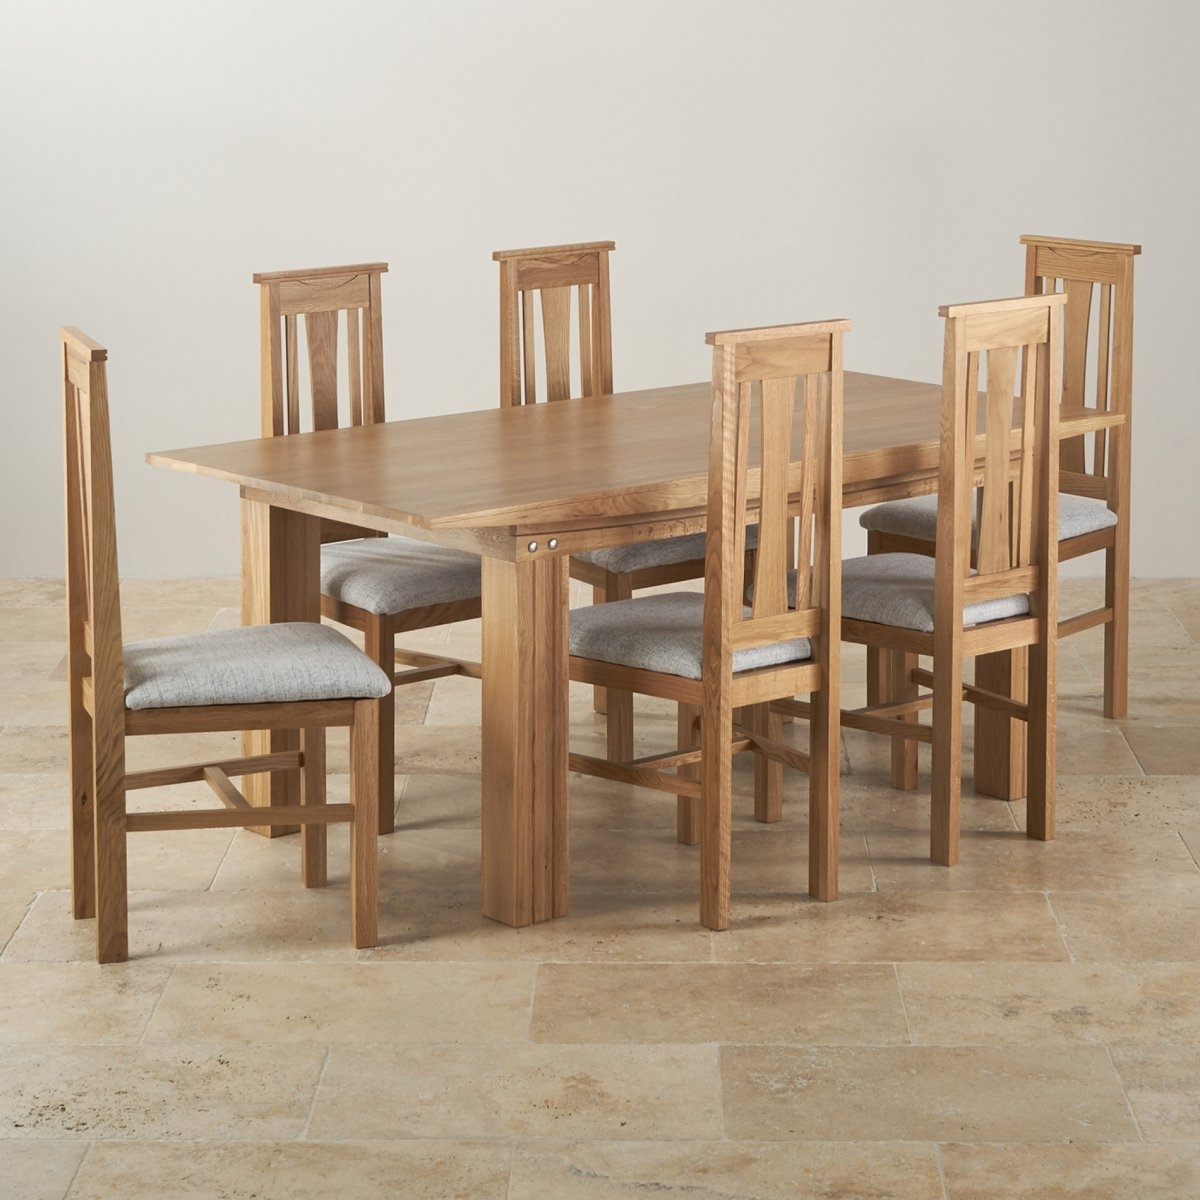 Popular Solid Oak Dining Table And 6 Chairs Solid Oak Dining Table And 6 Inside Chunky Solid Oak Dining Tables And 6 Chairs (View 14 of 25)